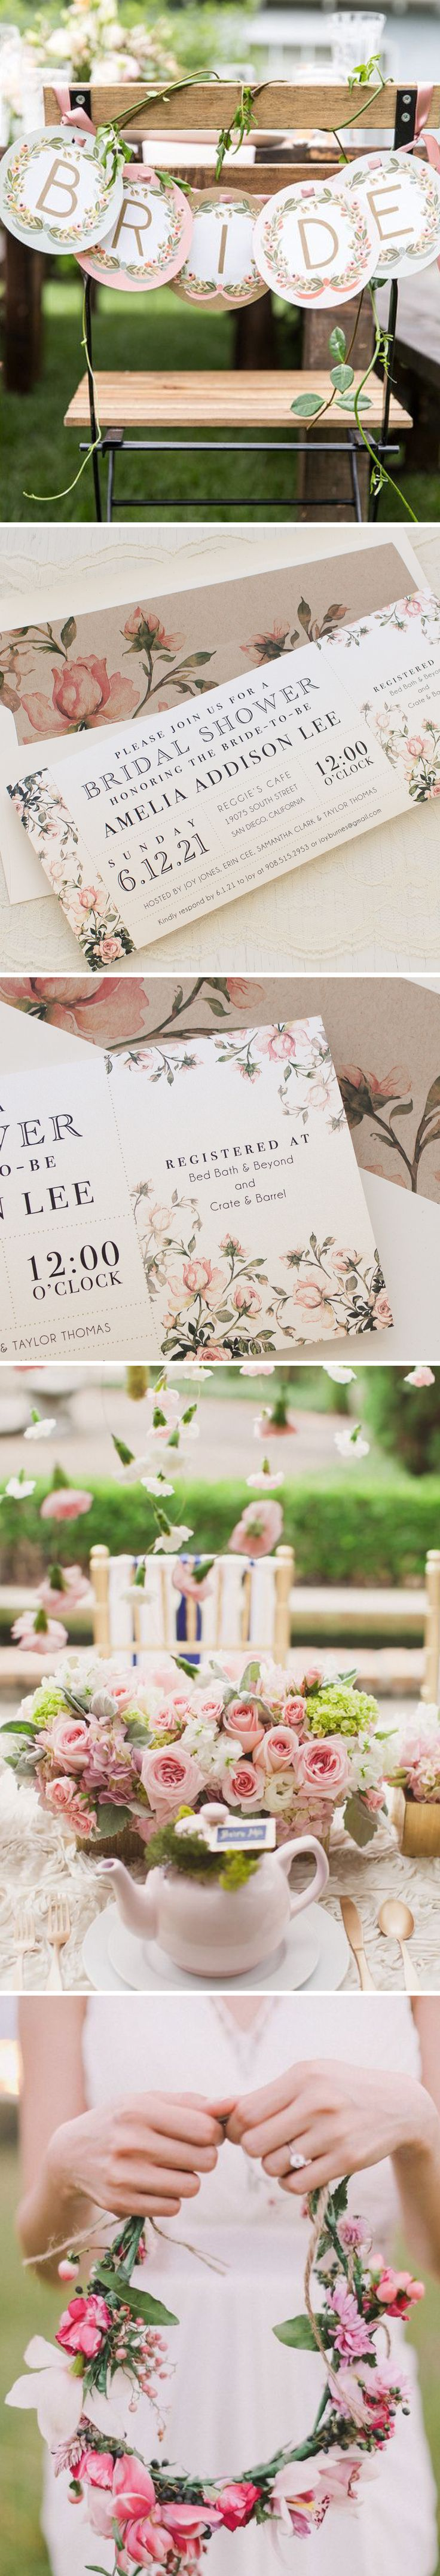 Set the tone of your bridal shower with Garden Roses, Beacon Lane's floral style invitations with patterned envelope liners specially made for your party.